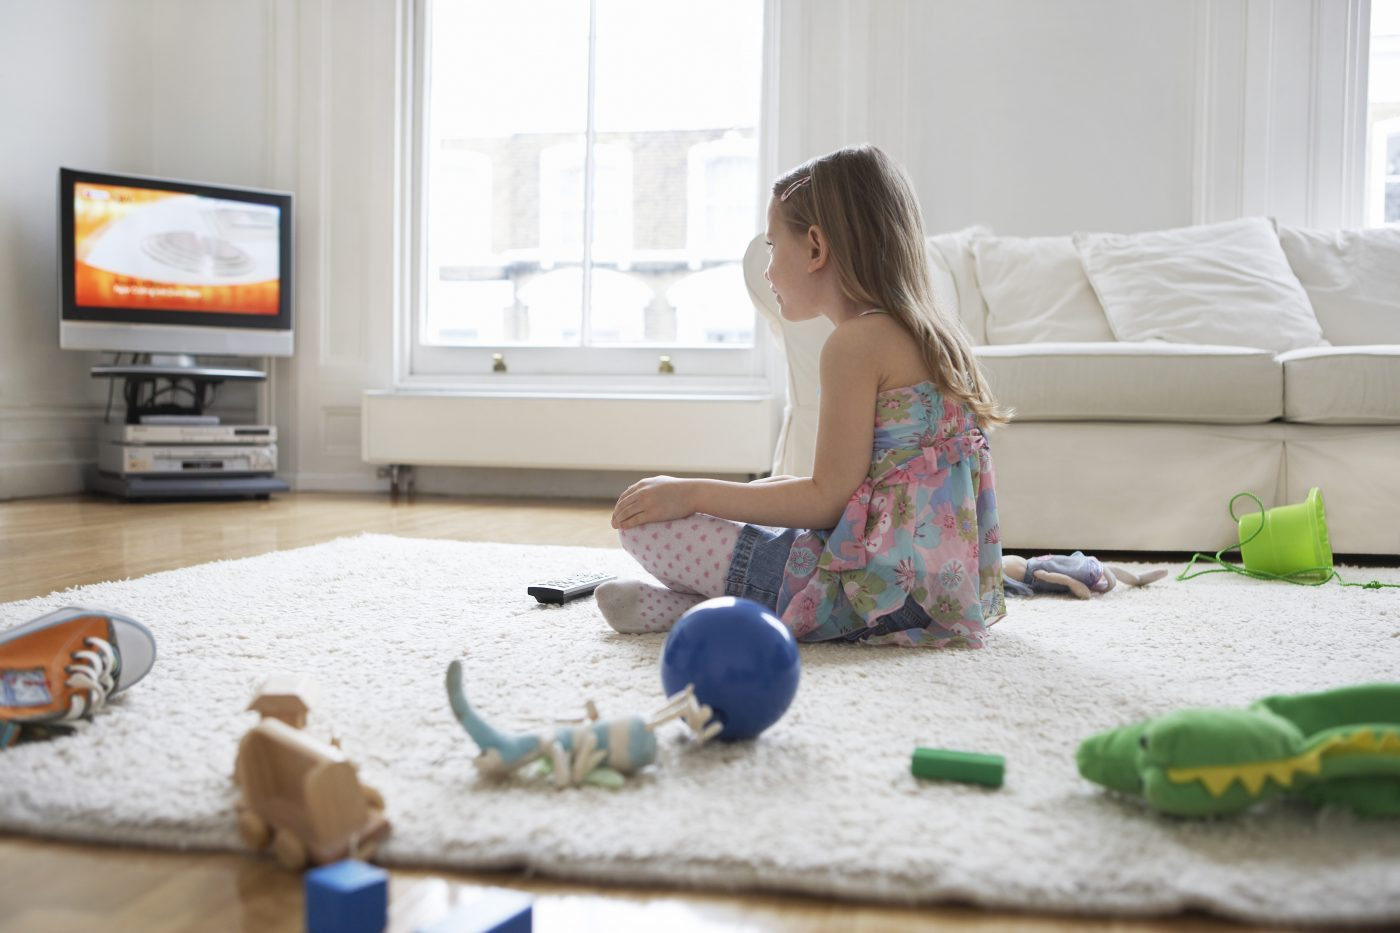 Girl watching television in the living room.